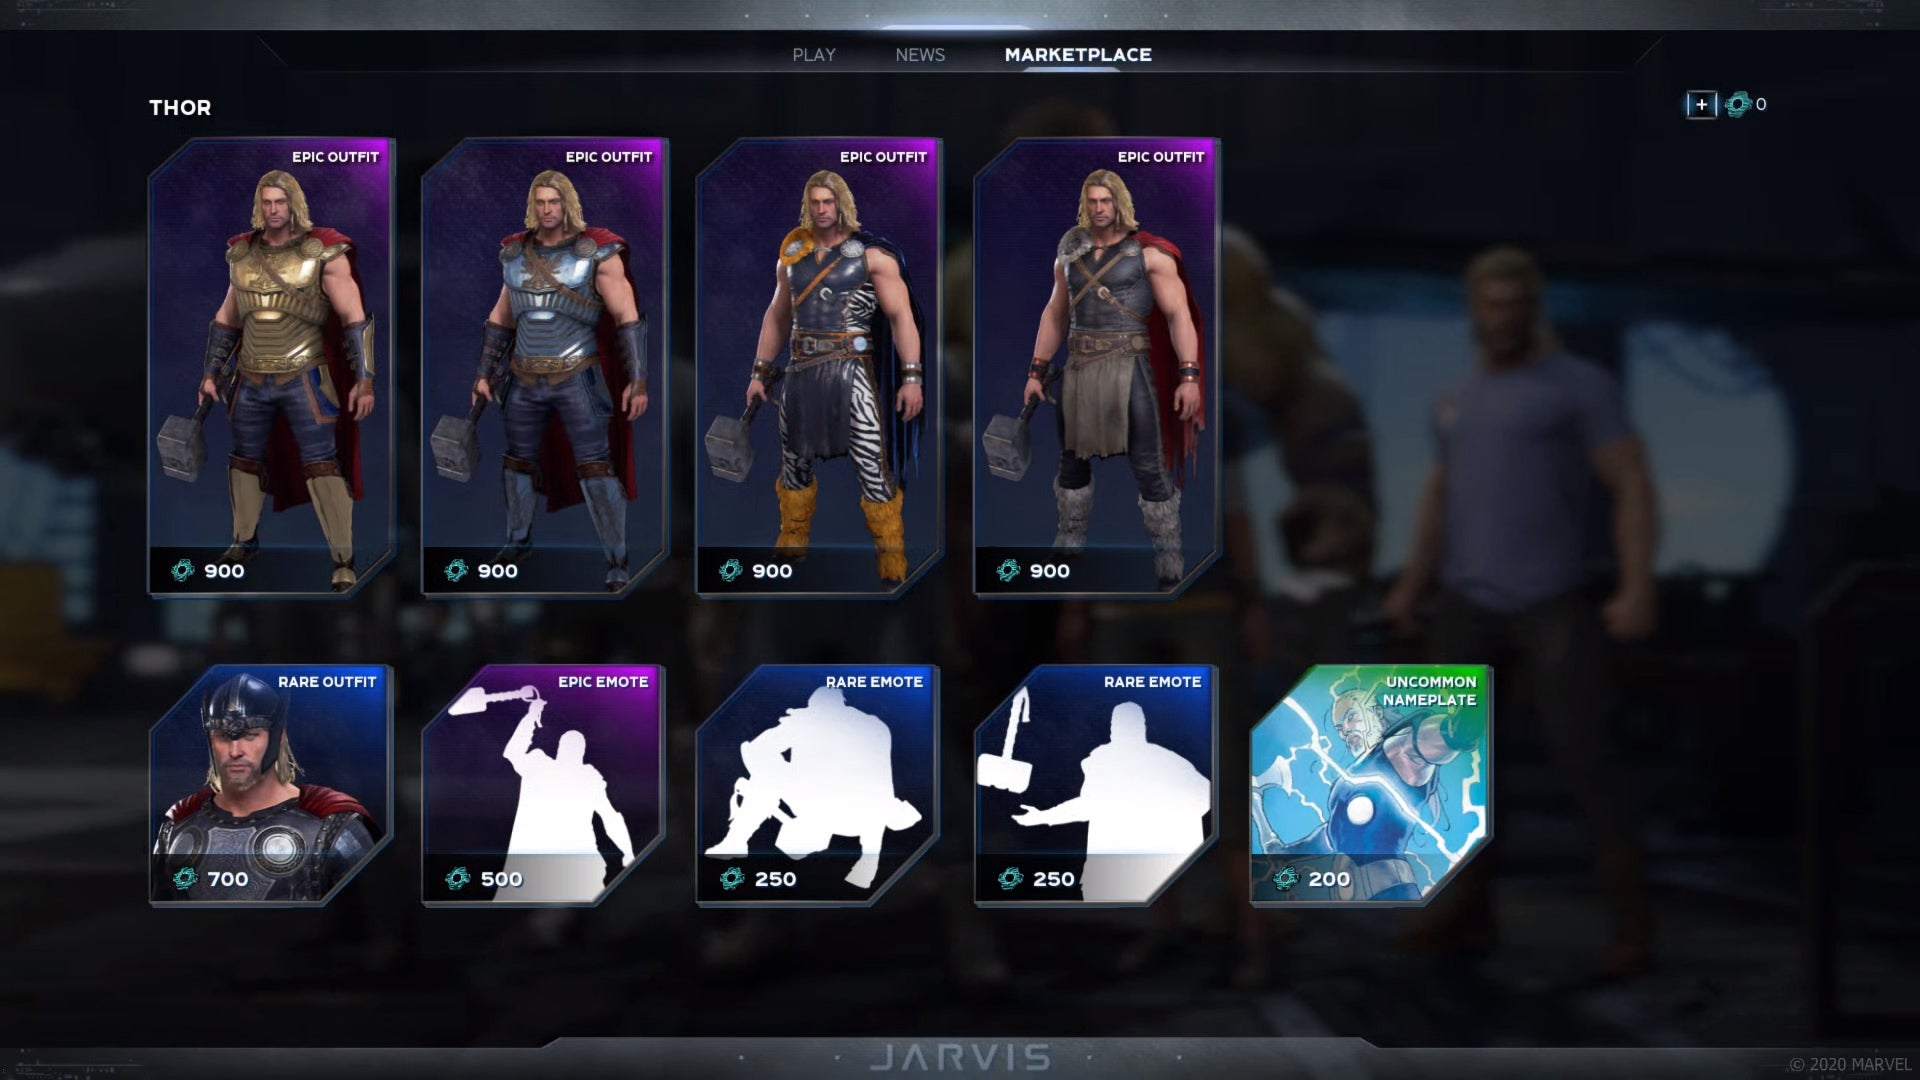 Thor marketplace containing Outfits, Emots & a Nameplate